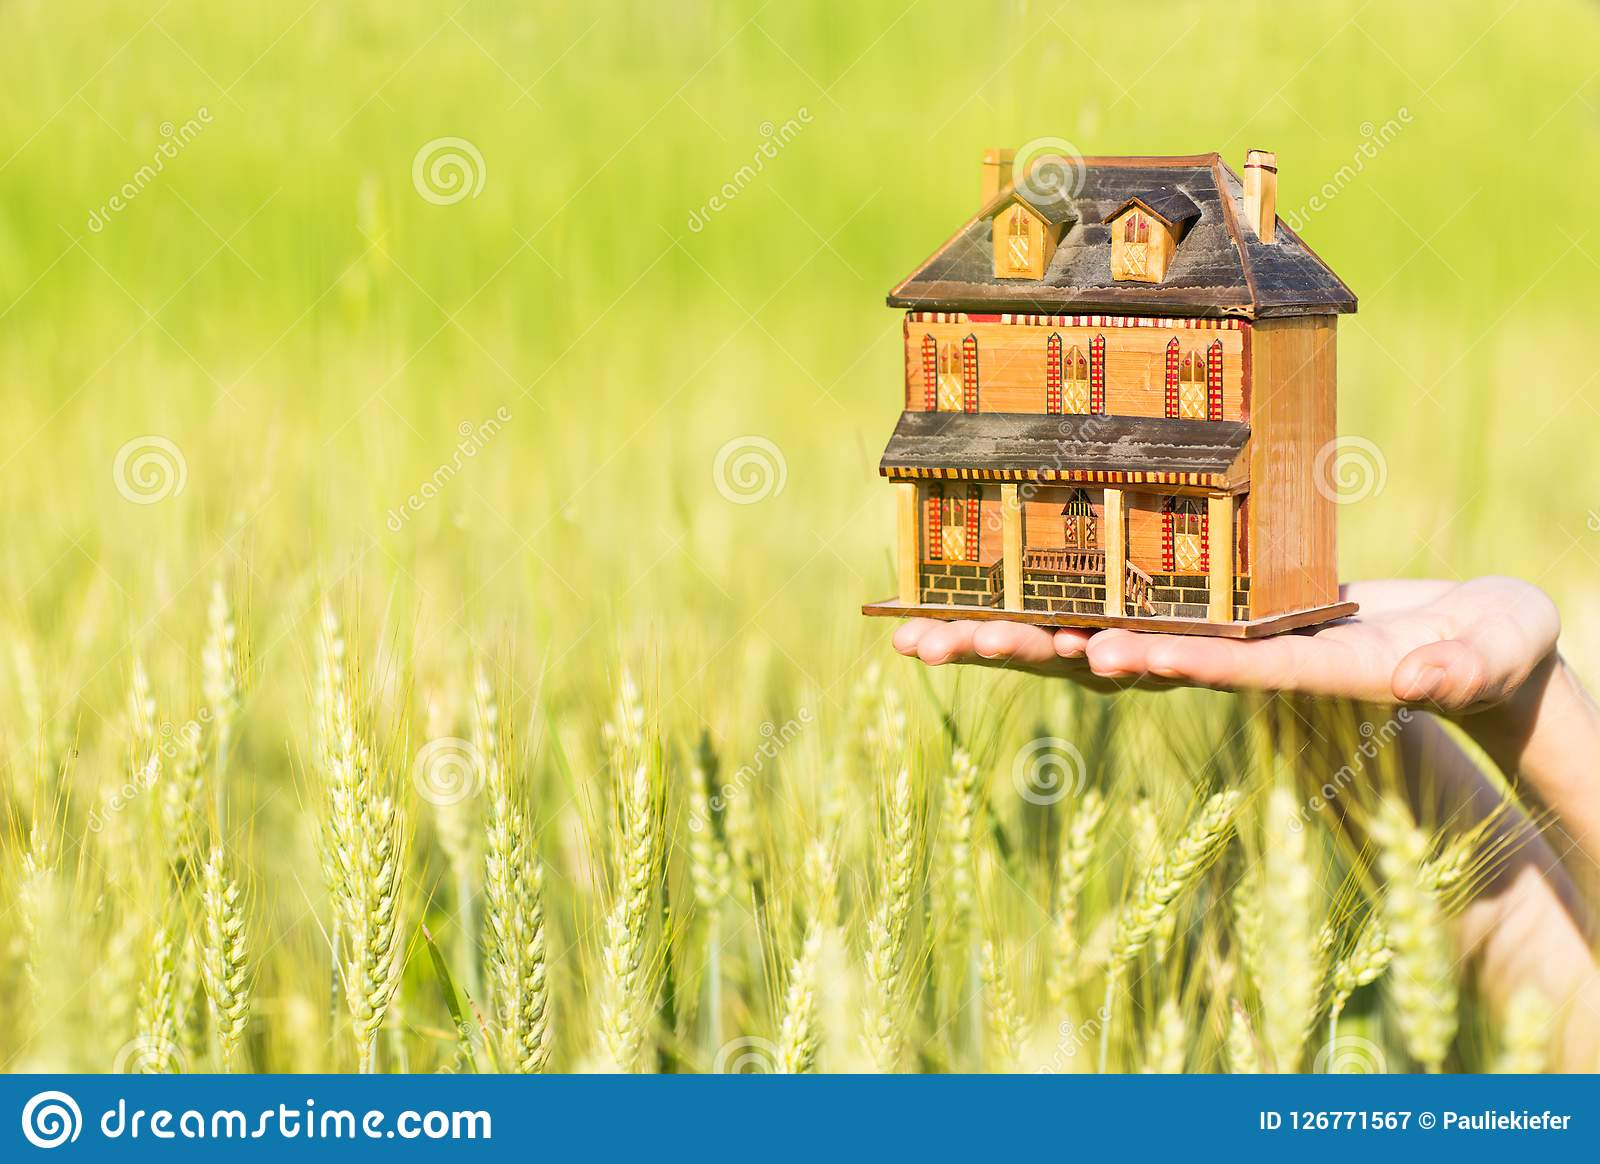 Close-up of hands holding a house model on a green meadow background.